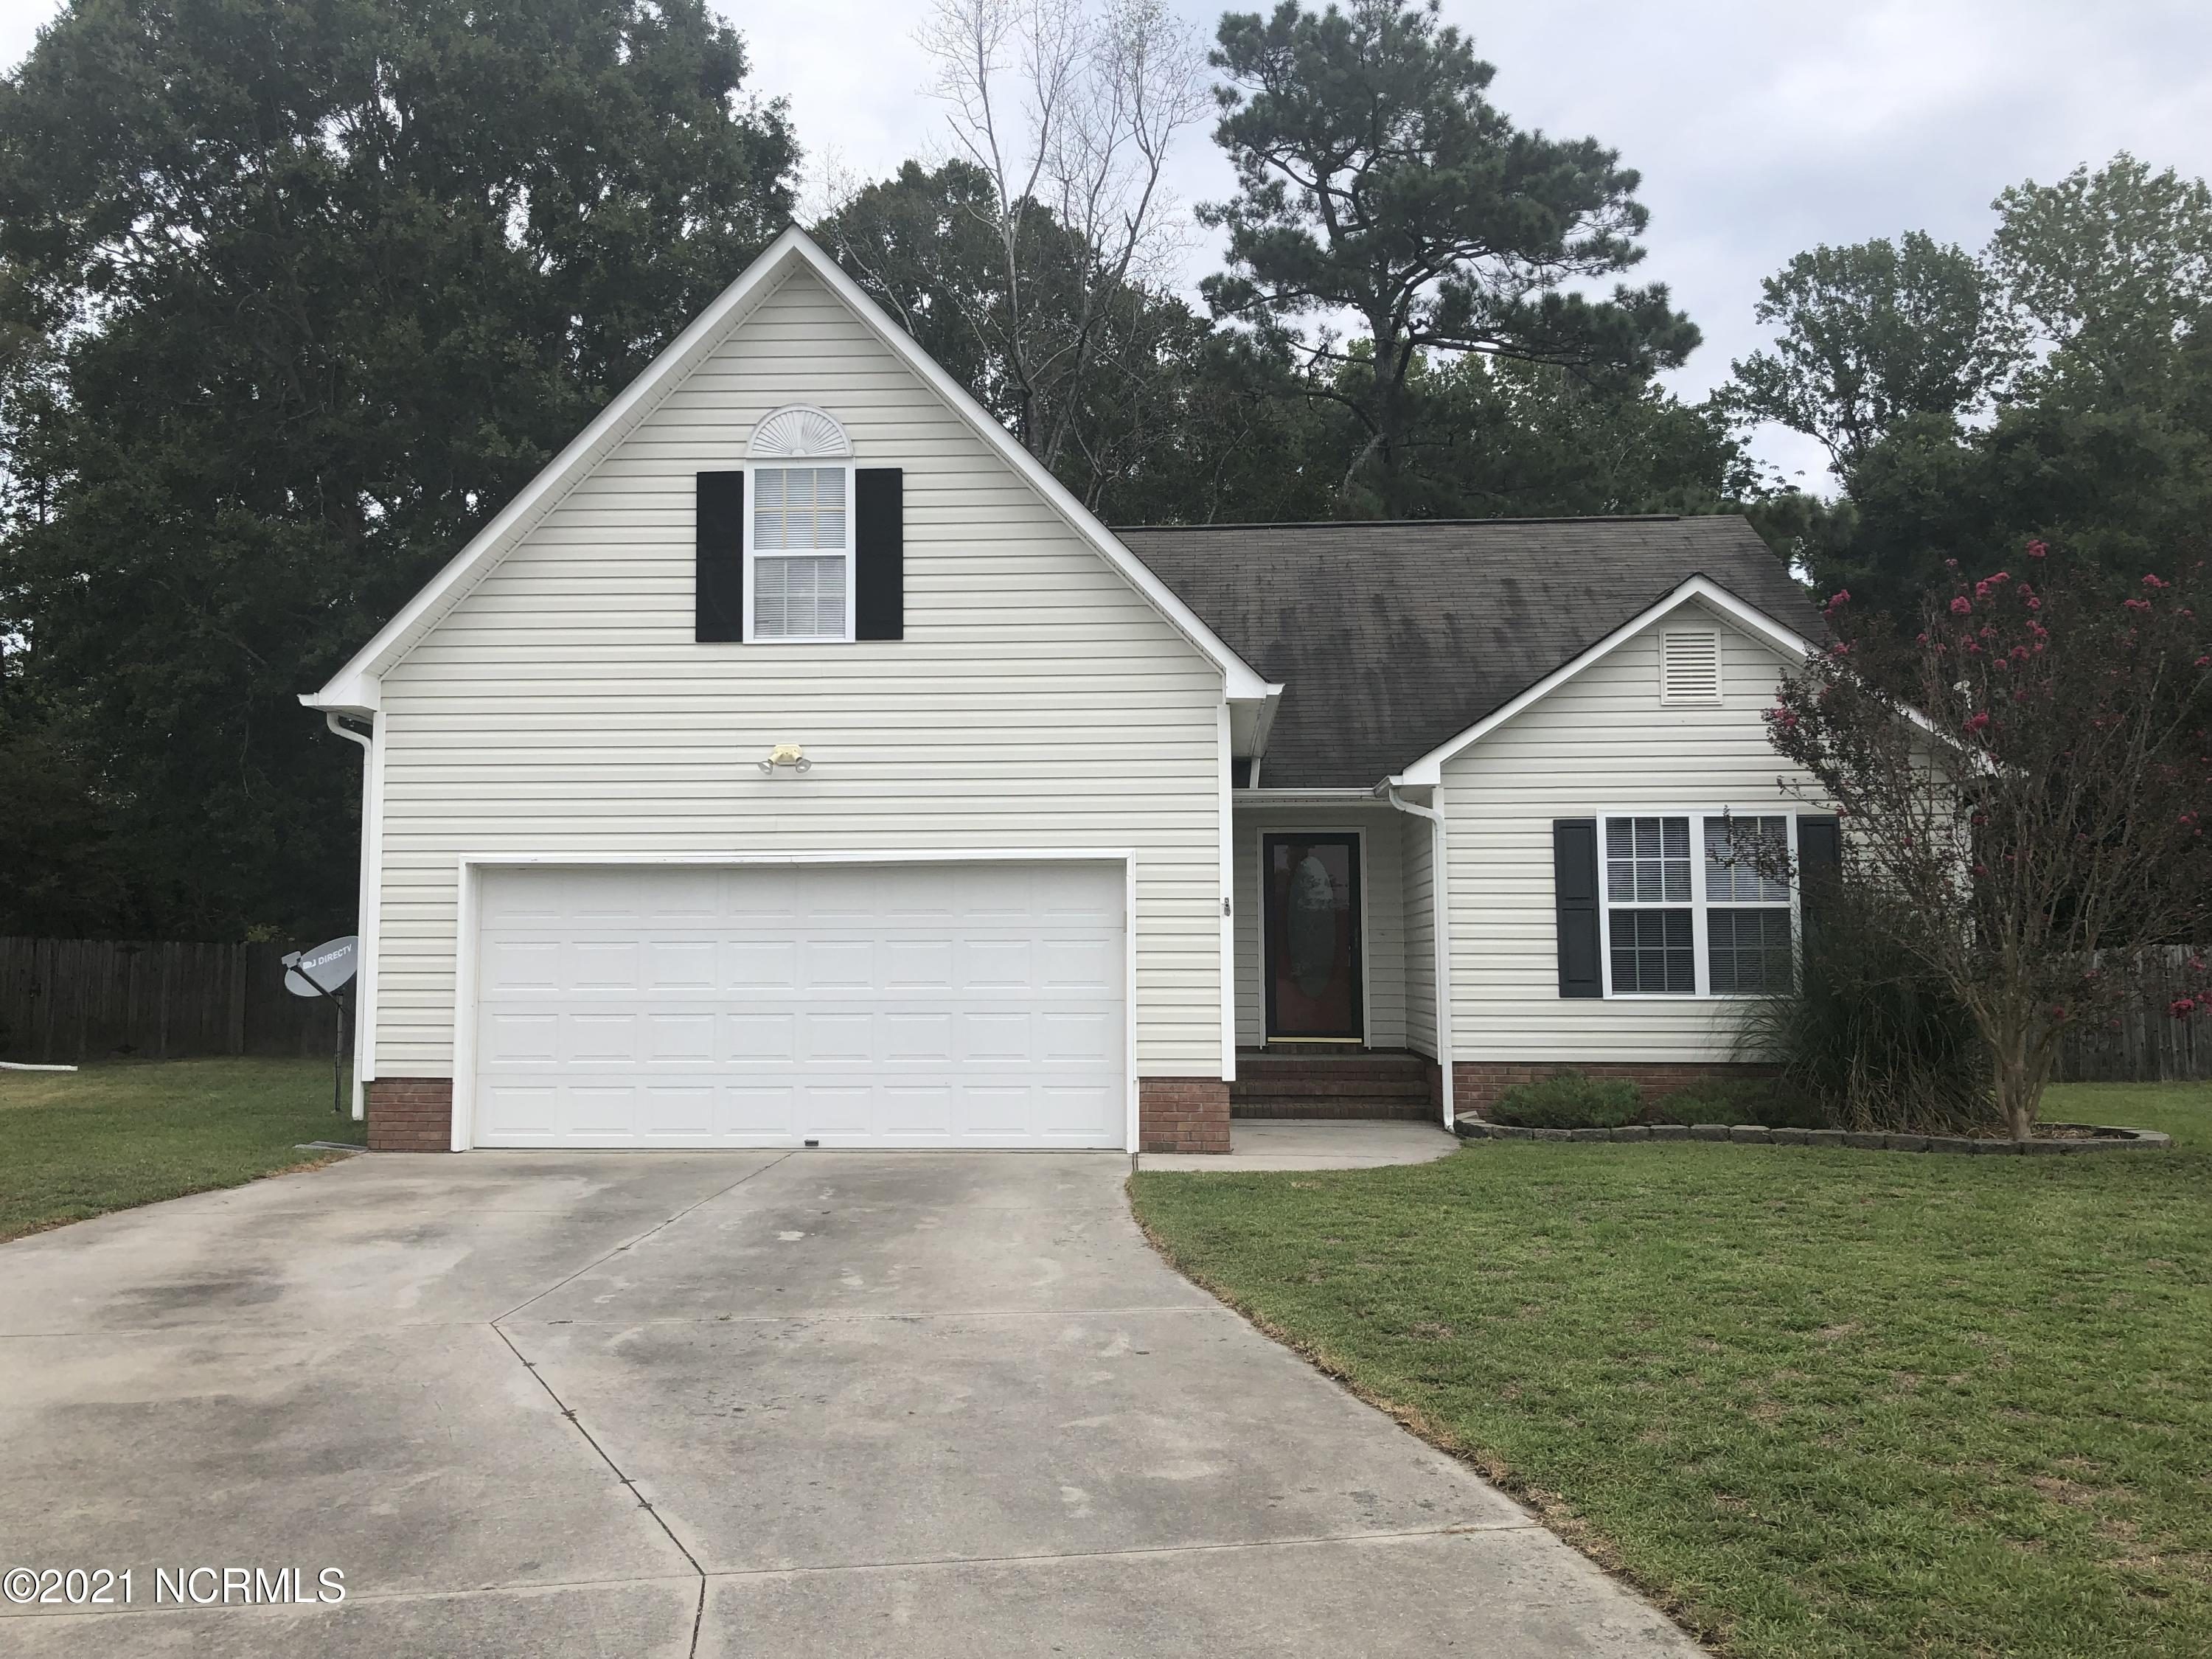 Welcome home to this great 3 Bedroom 2 Bath with Bonus room located in small neighborhood off Gum Branch close to all area shopping and bases. Home is located in a cul-de-sac and has large fenced in yard.You will not be disappointed! Call us today.